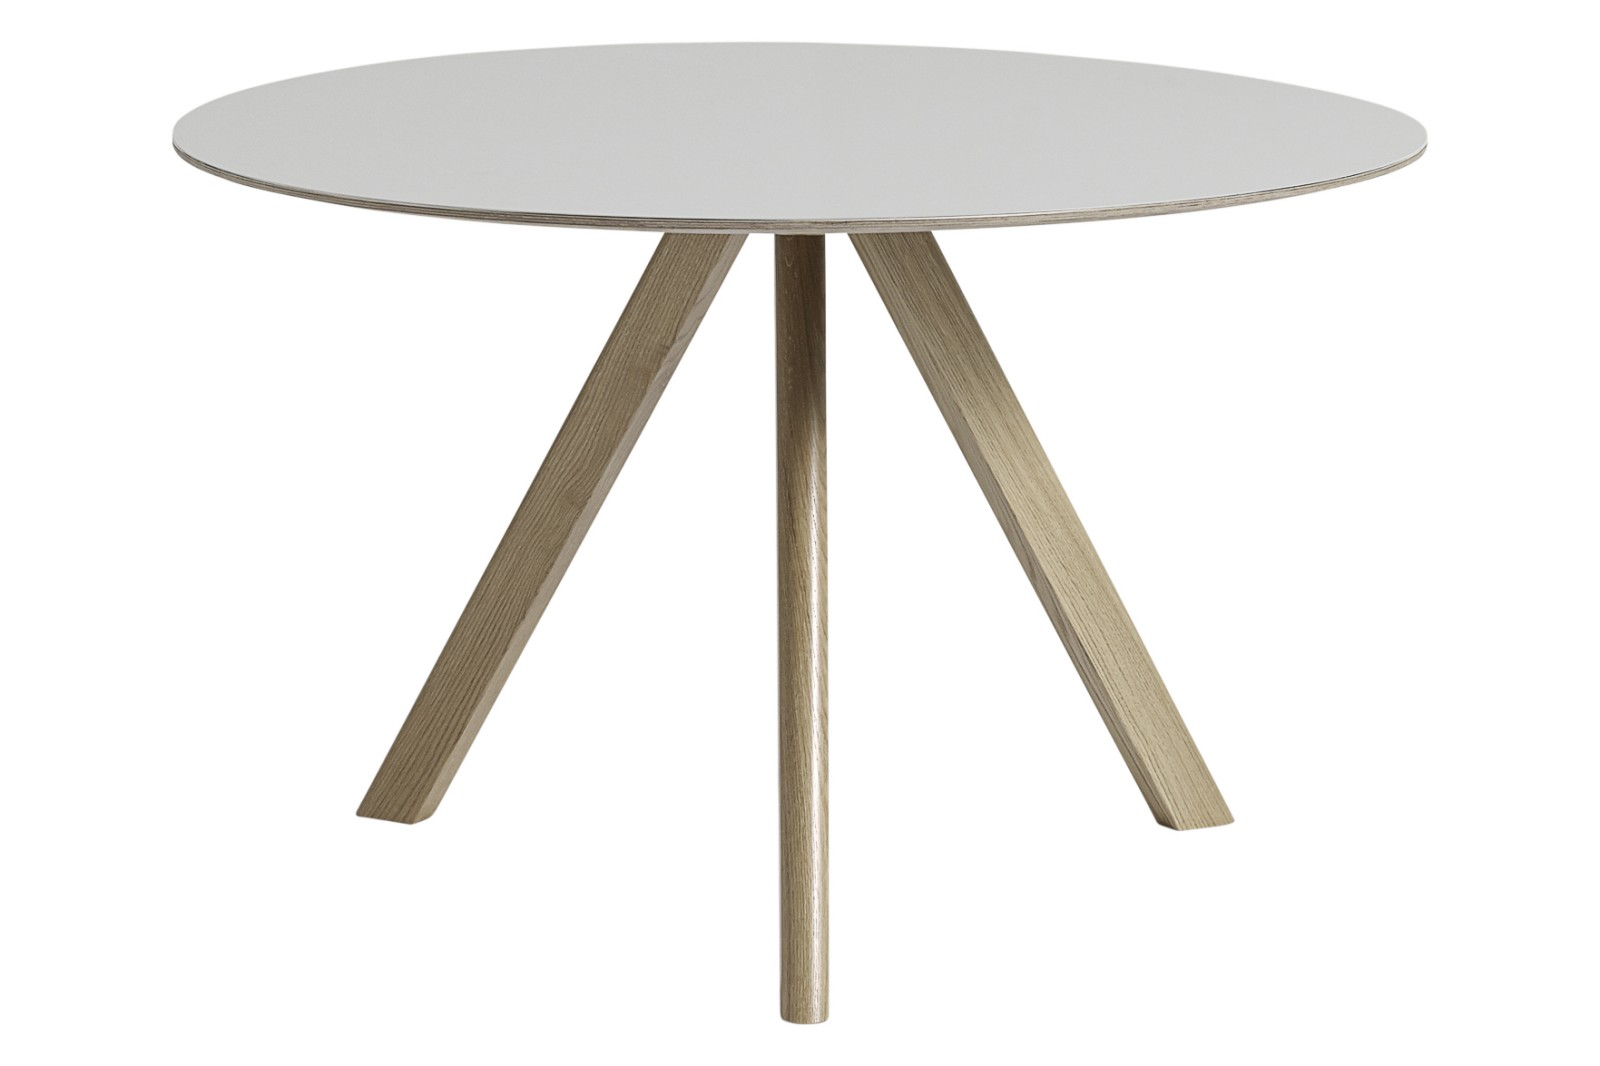 Copenhague Linoleum Top Round Dining Table CPH20 Soap Treated Oak Base, Off White Top, Large